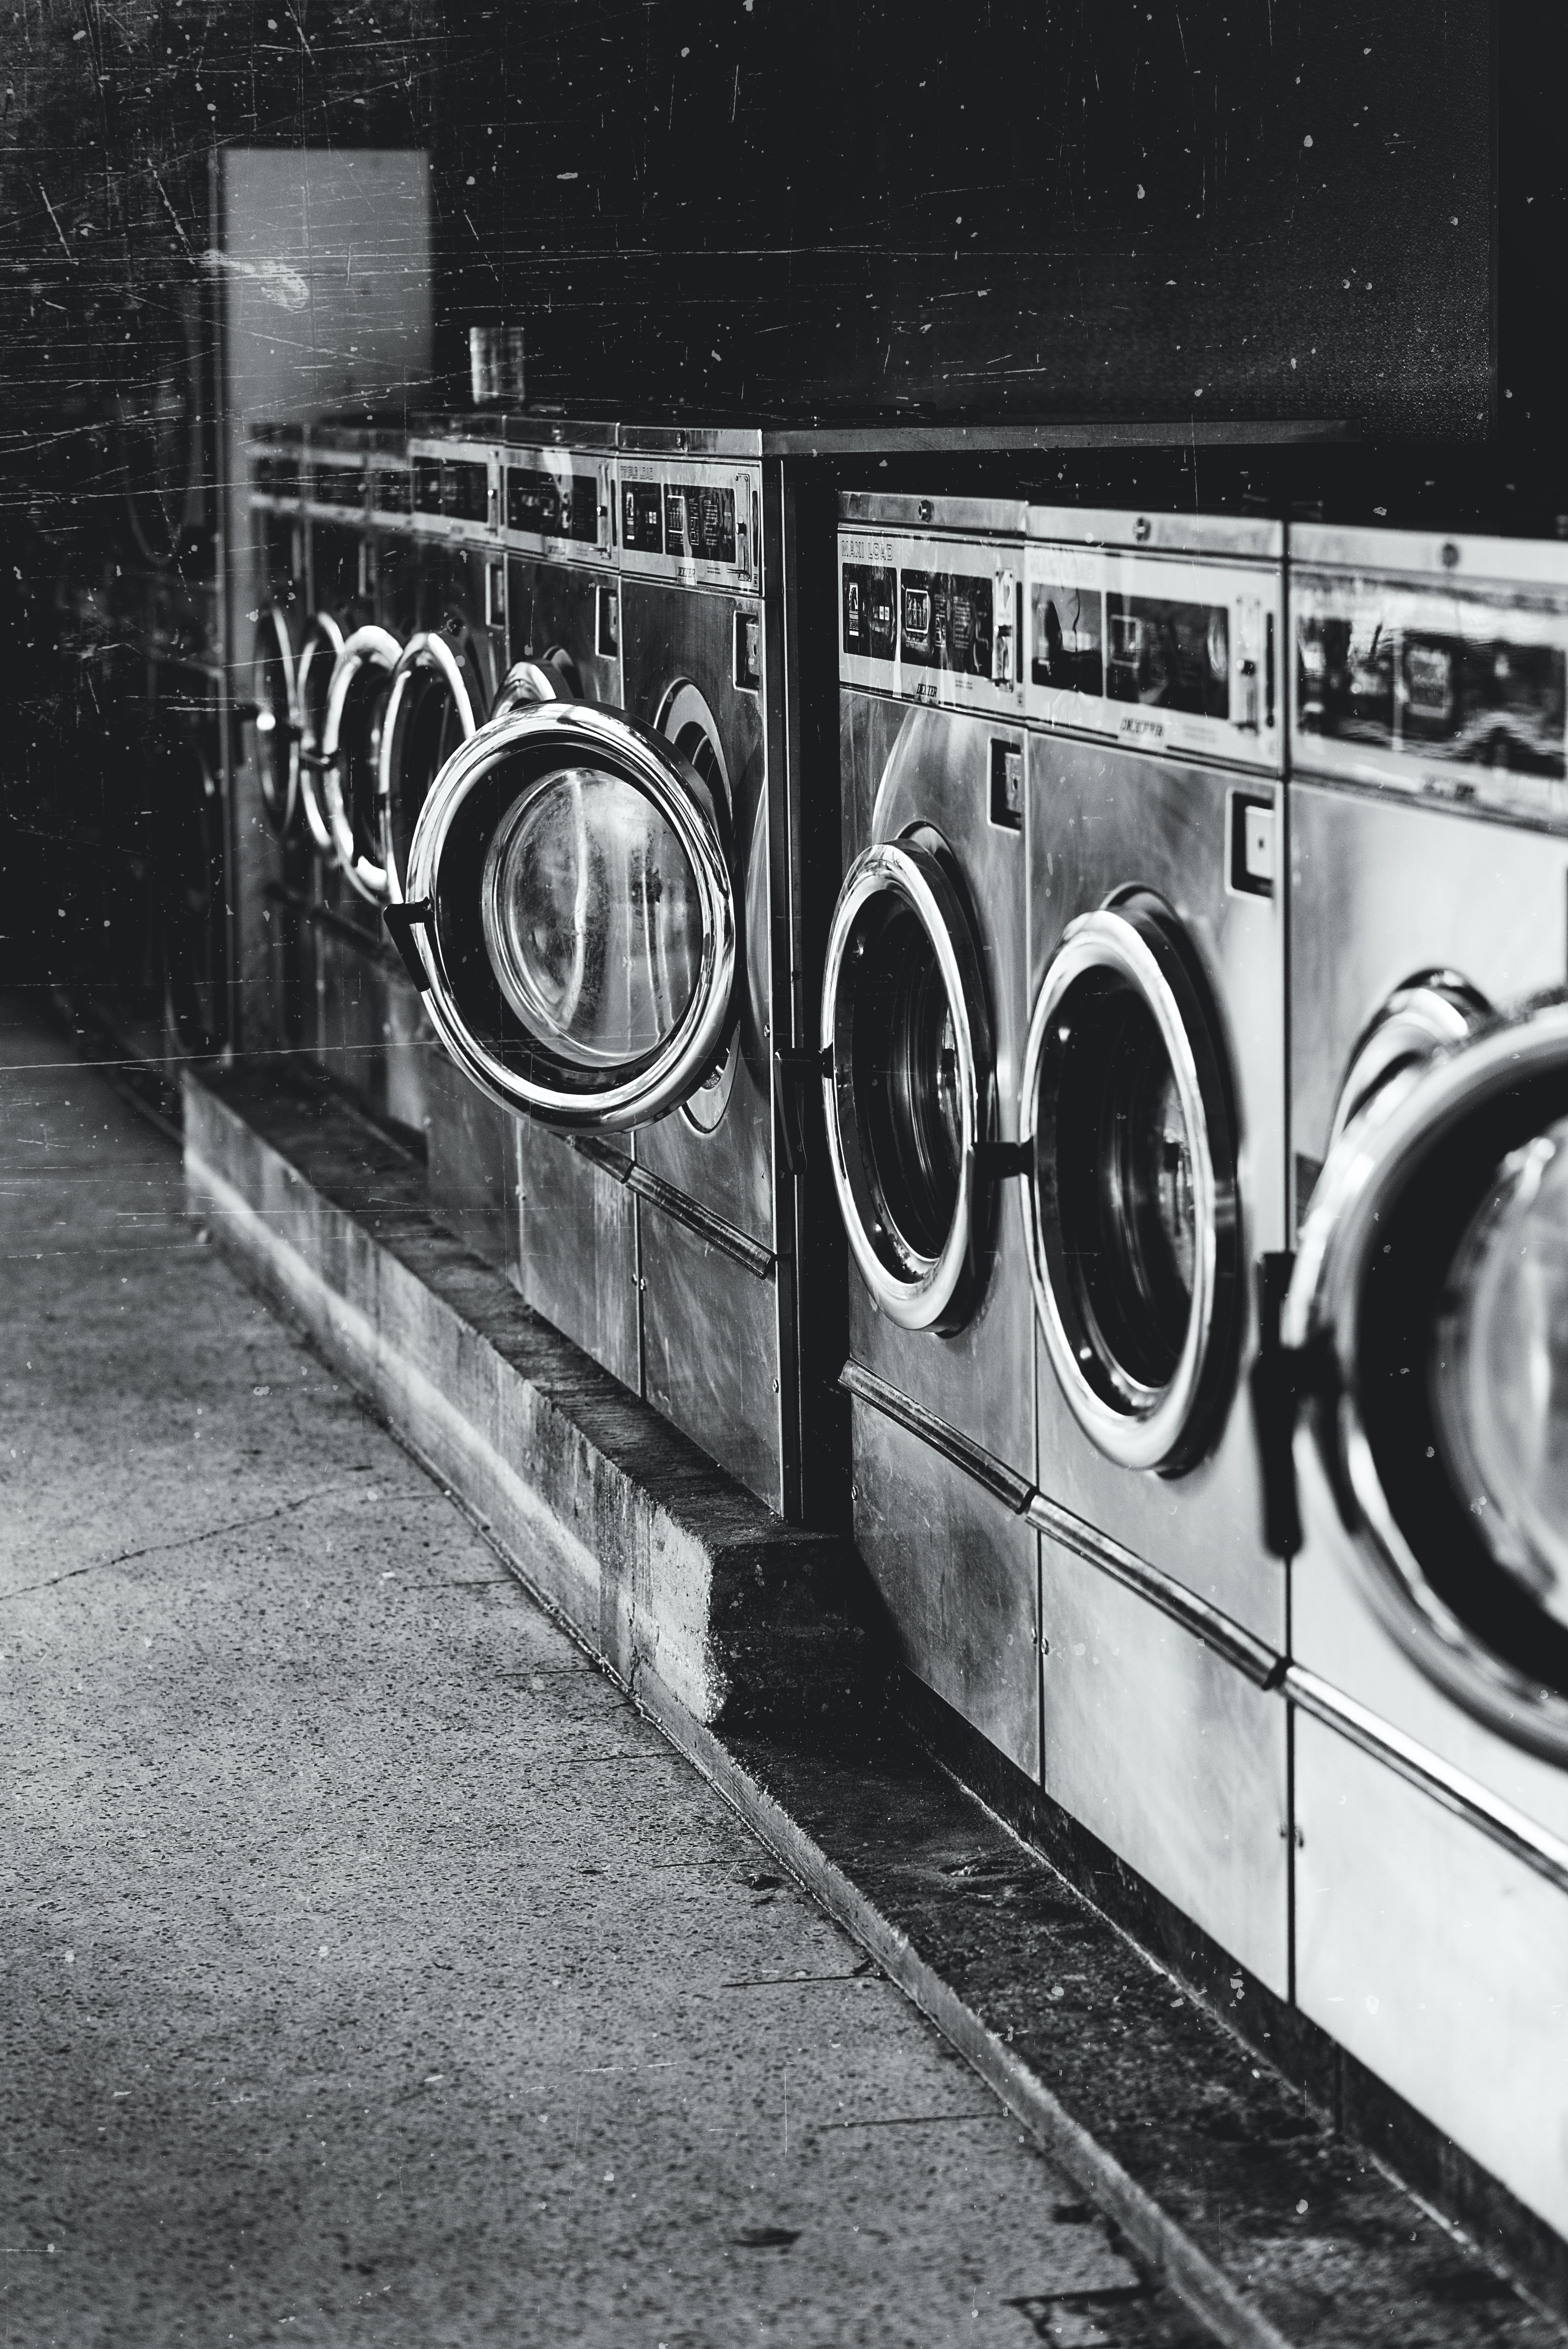 Free stock photo of antique, black and white, dryer, laundromat